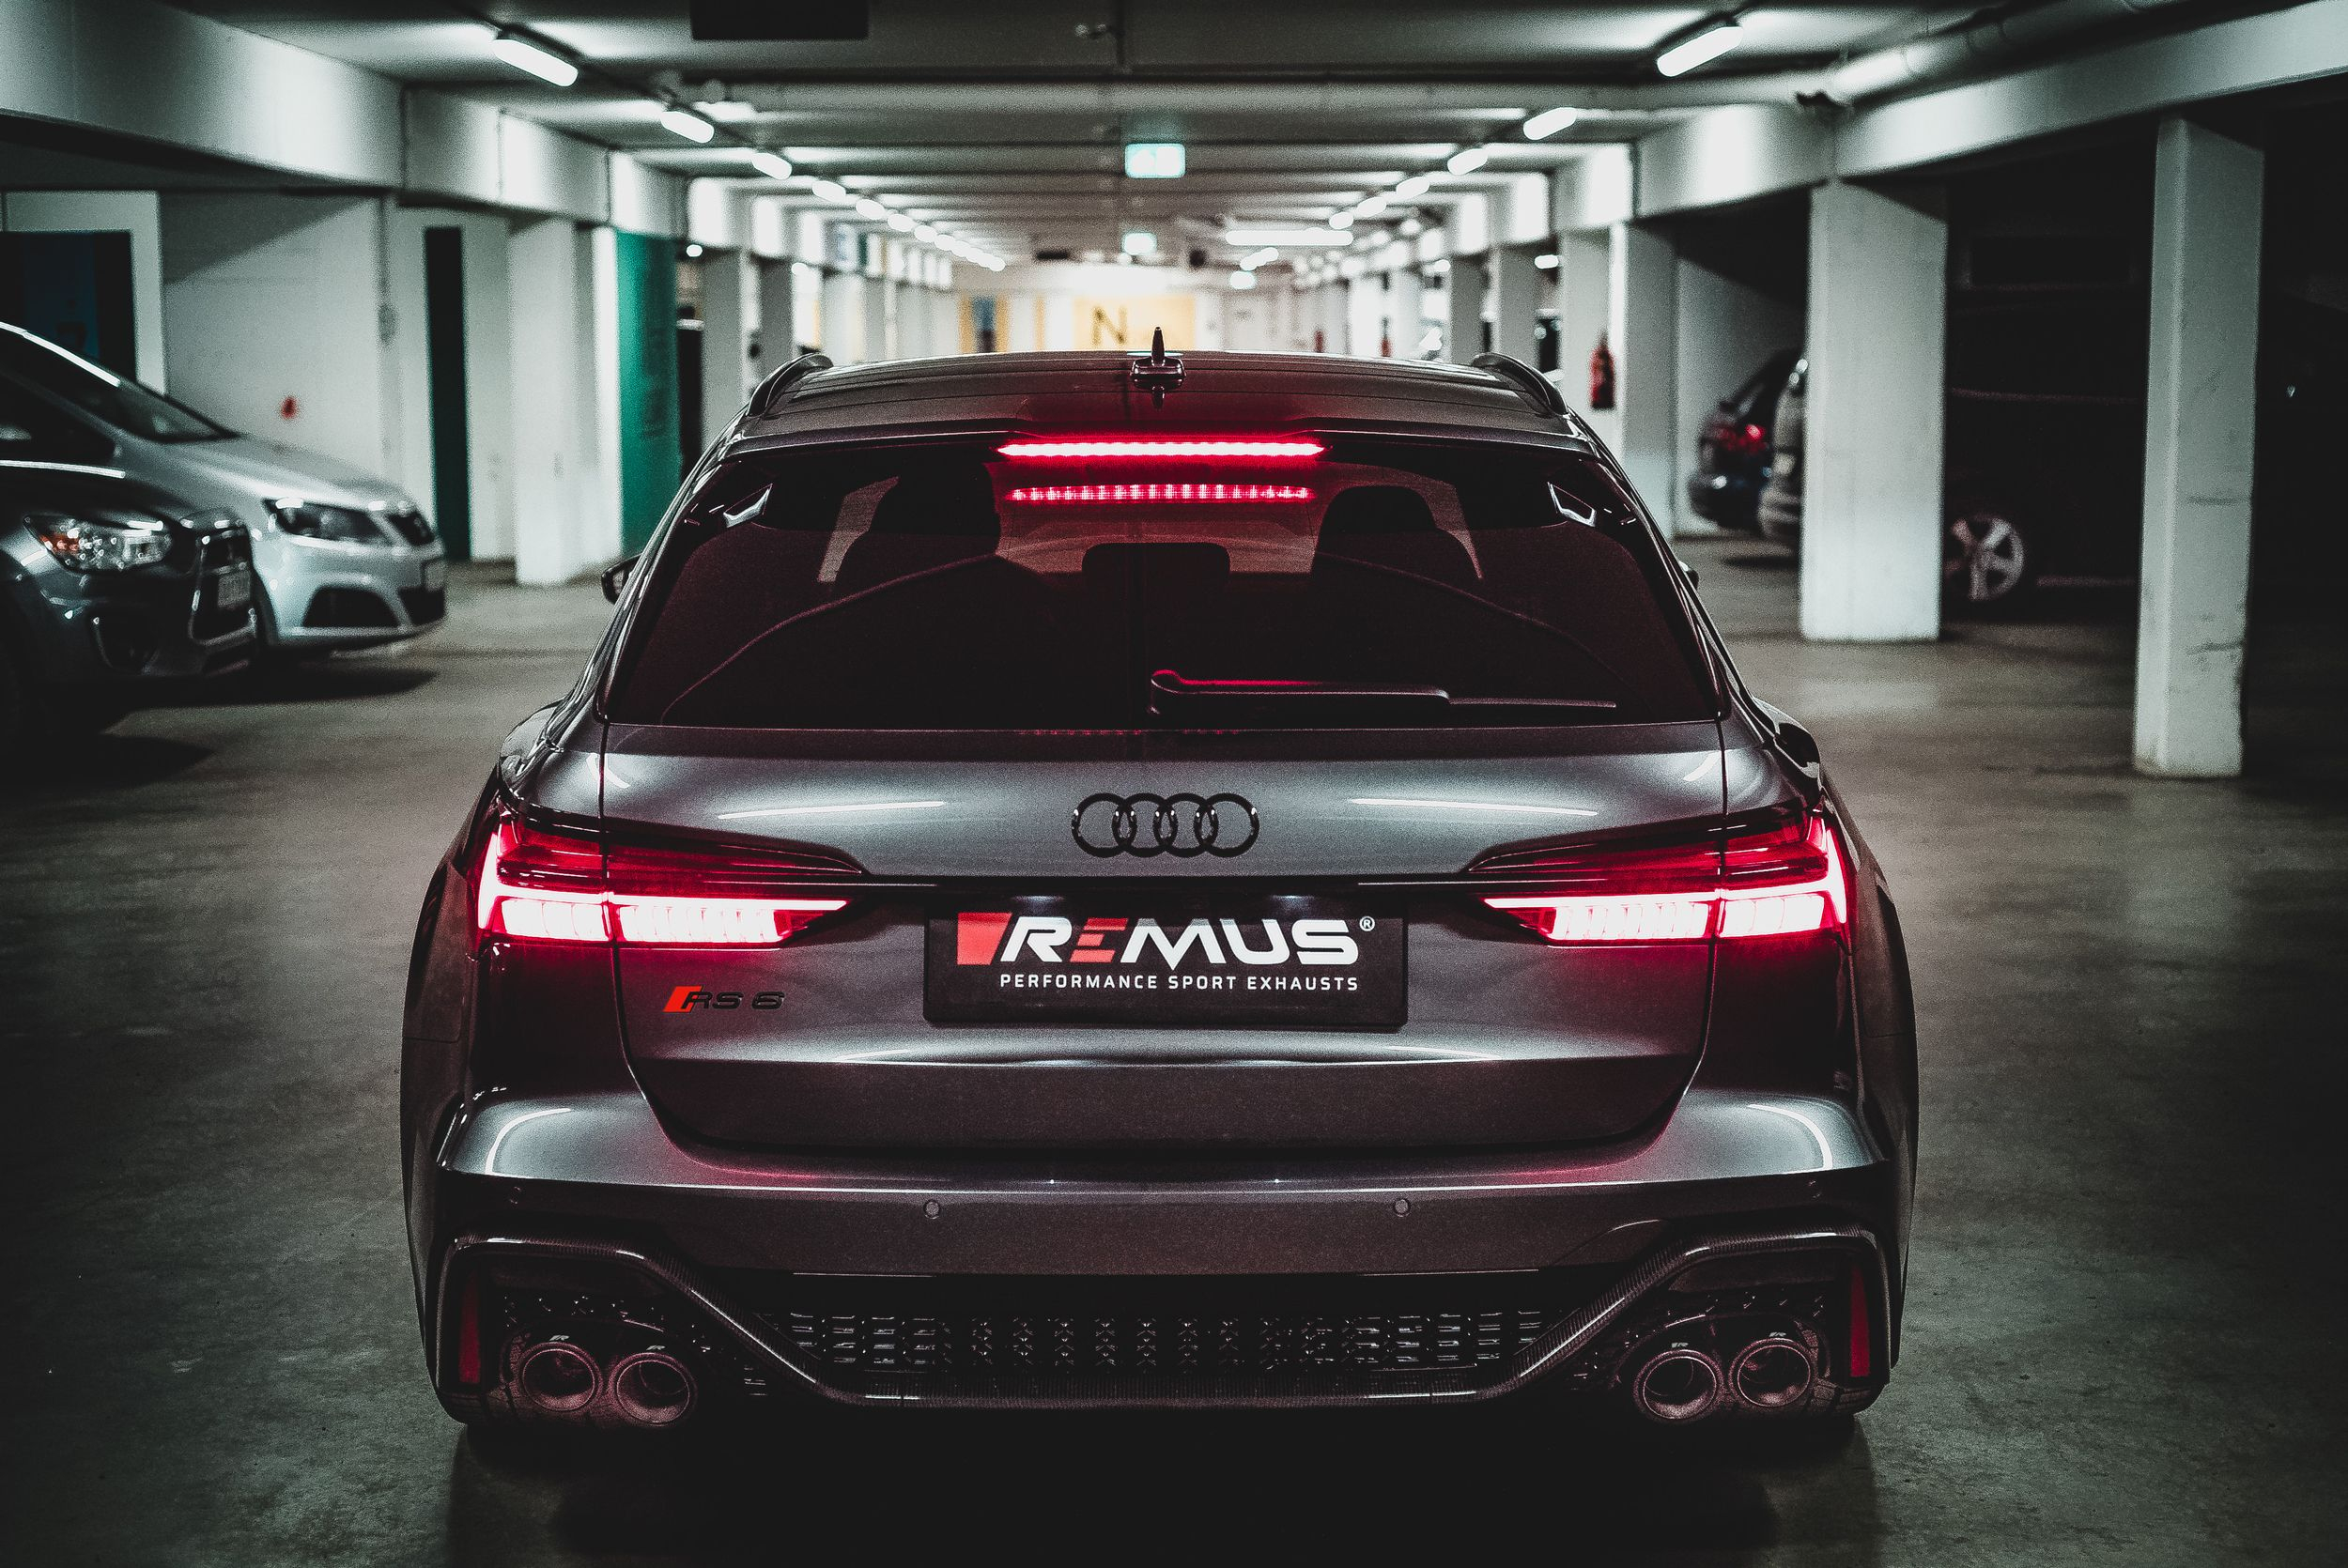 Audi RS6 RS7 Remus